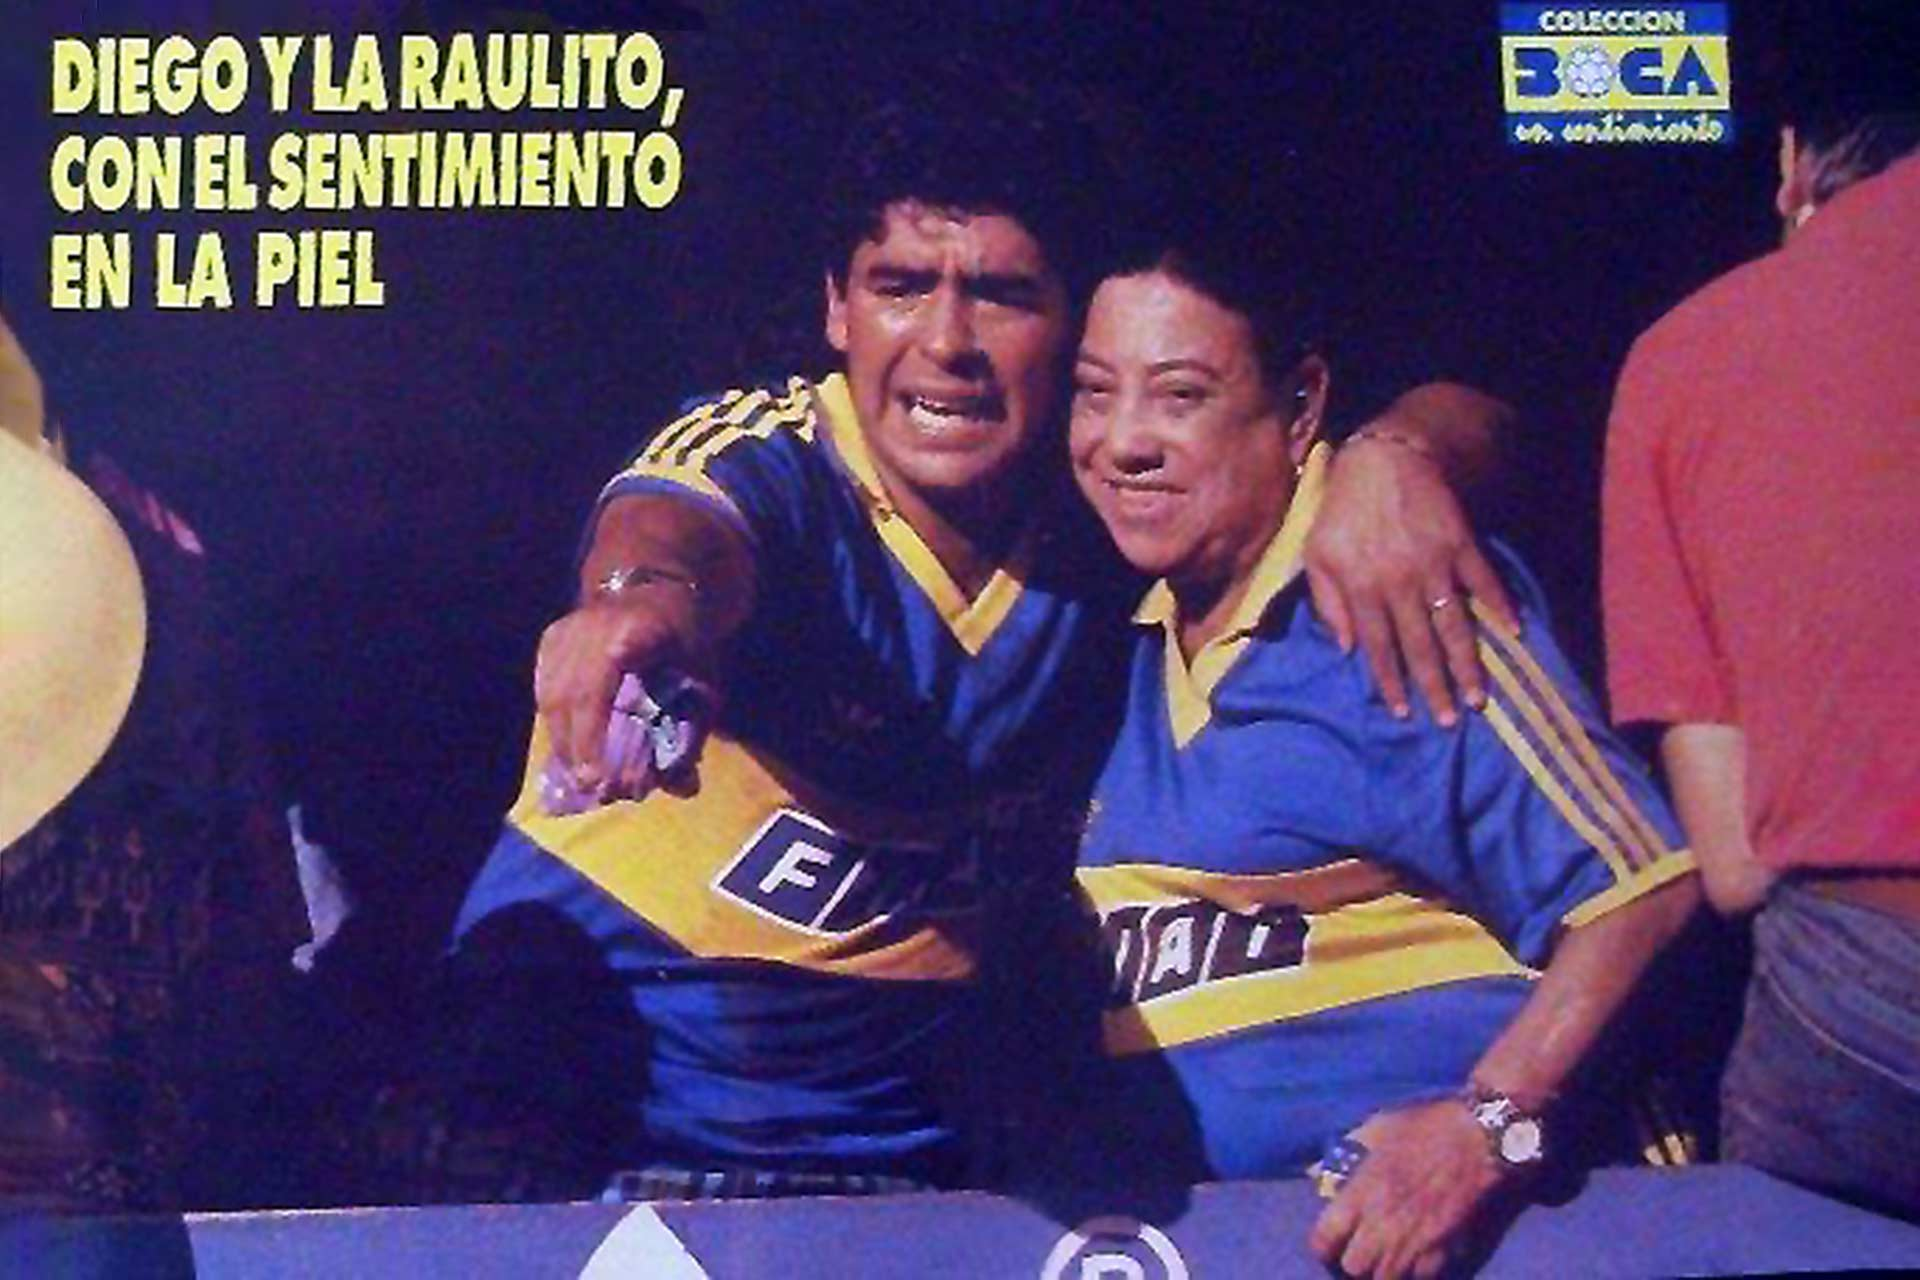 La Raulito and her all-time favorite